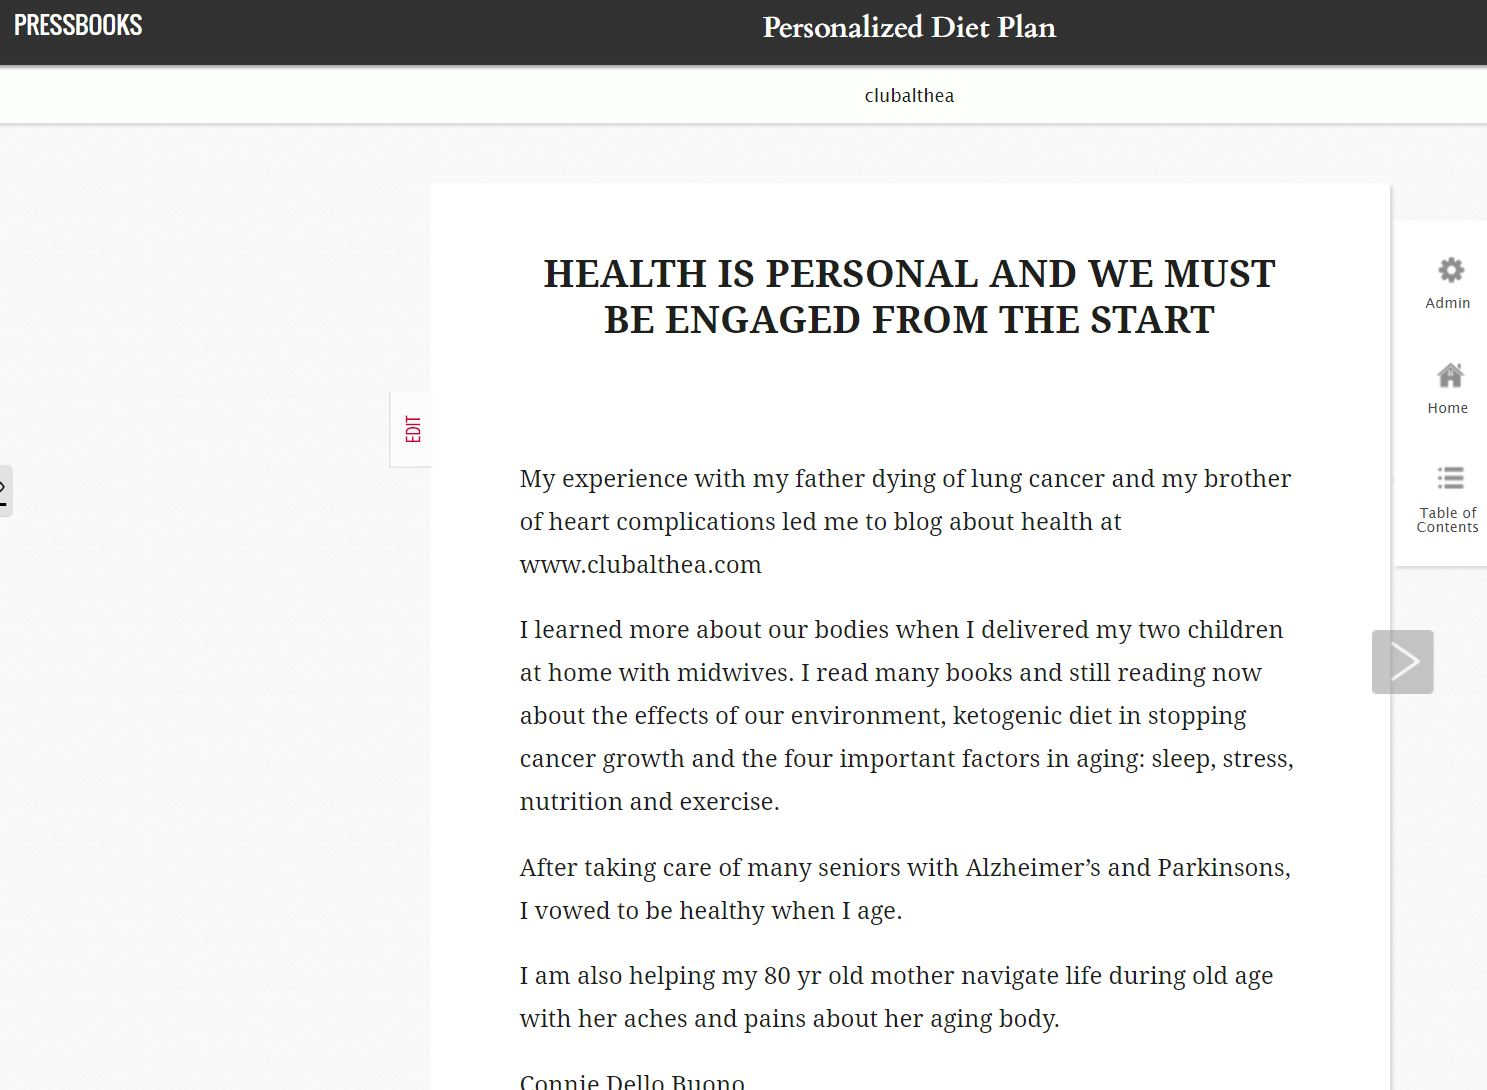 Personalized diet ebook brain disease senior care womens health fandeluxe Image collections